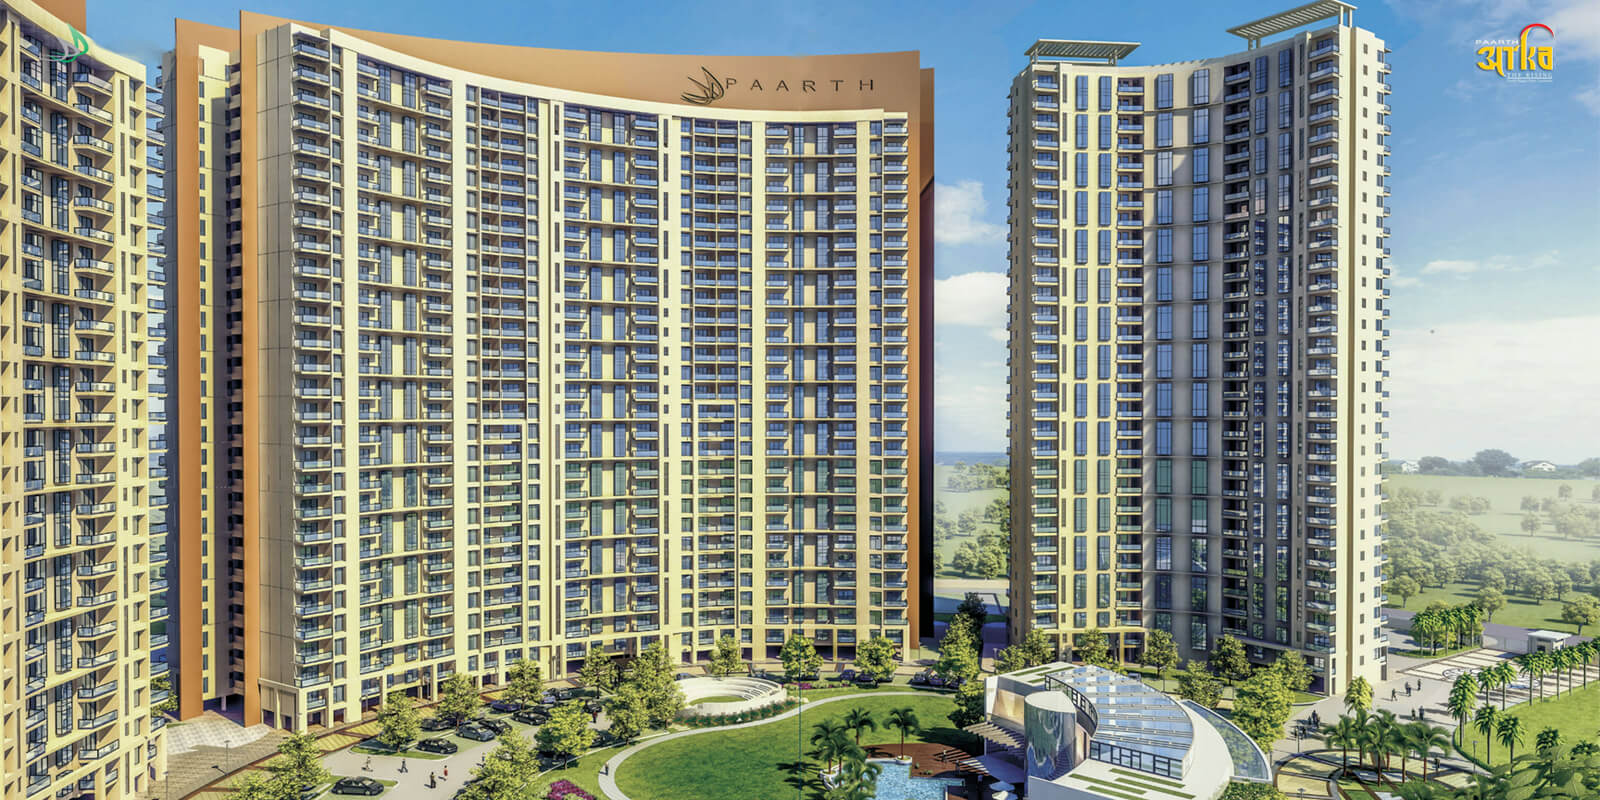 paarth infrabuild arka project large image1